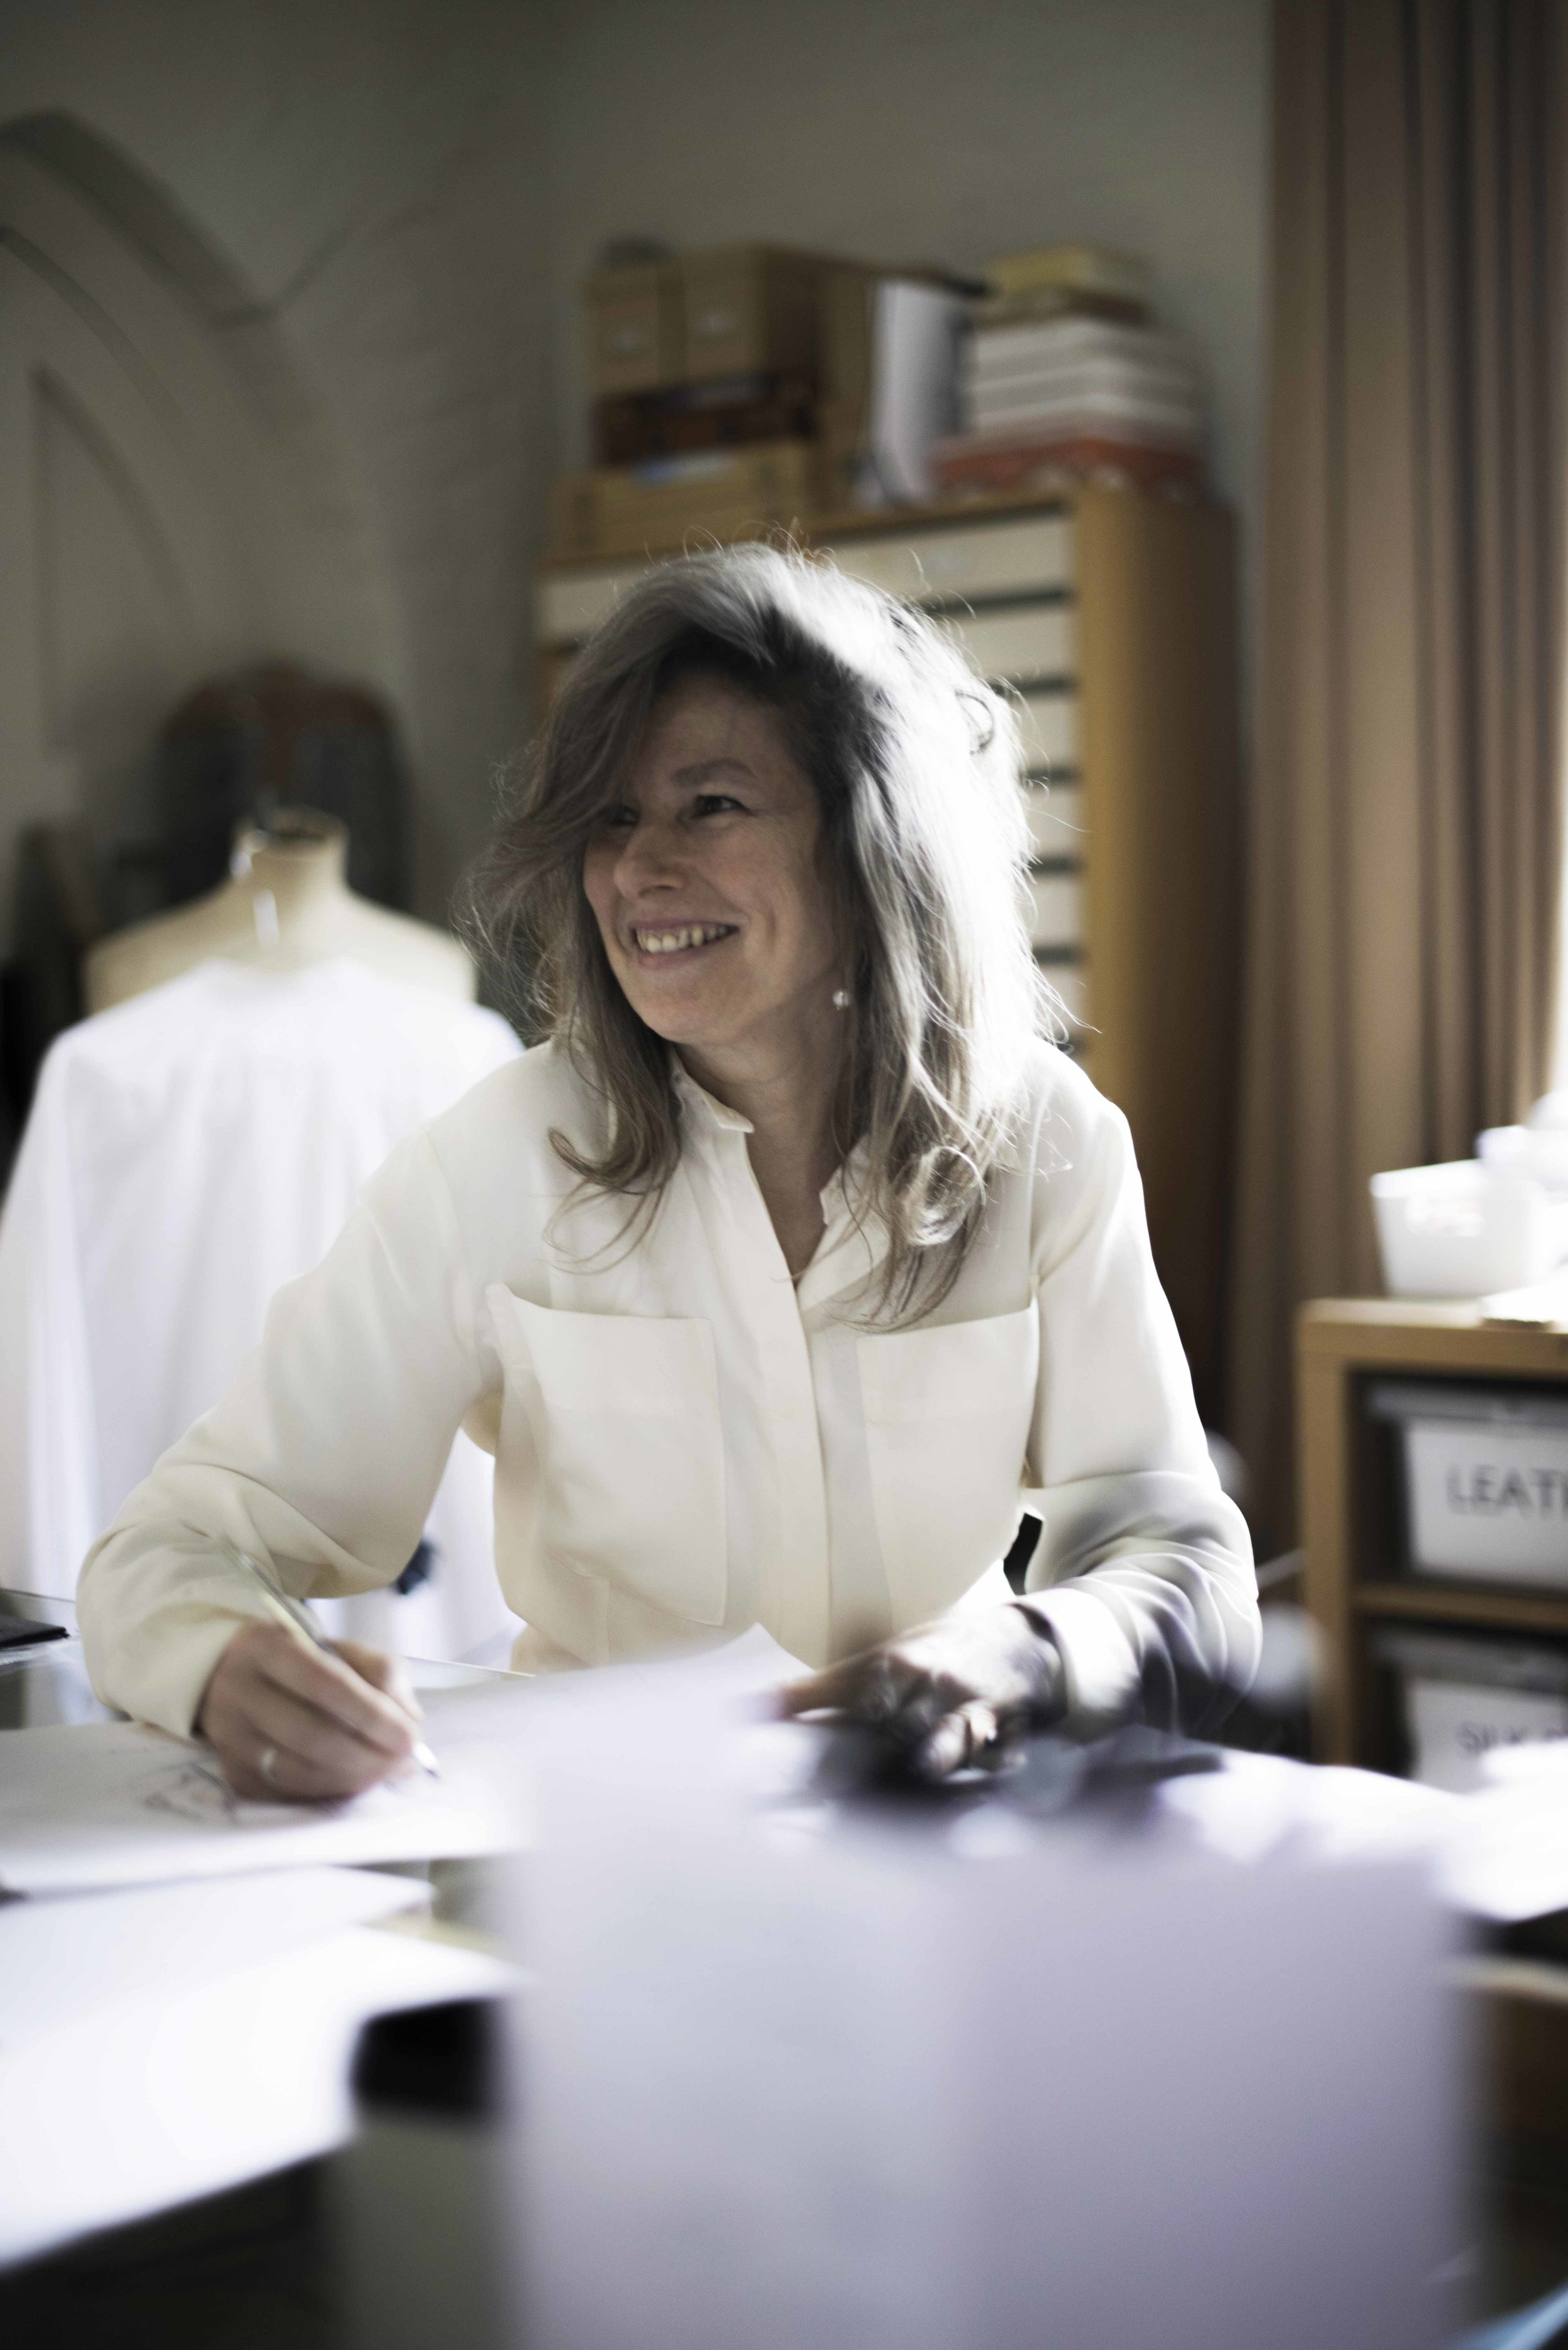 Jenny Mort - Having spent her childhood between Africa and the English countryside, both of which inspired a love of all things wild and wonderful, Jenny spent several years as a personal design assistant to Jean Muir in her Mayfair studio absorbing her qualities of precision and perfection.She then began developing her own textile product ranges for, amongst others, Harrods, Barney's New York, Seibu Japan, The British Museum and The Royal Academy at the same time as receiving commissions for several prestigious interior design projects. A best -selling children's range followed; then, having successfully run her own accessories company whilst simultaneously completing special projects for Armani and British Airways, Jenny returned to her first love: fashion.Fired by a deep desire to preserve the age old British textile traditions of embroidery, smocking, weaving, knitting and hand finishing, Jenny set up her own label, Jenny M. London, which was quickly taken up by the legendary Joan Burstein of Brown's where it has sold for several seasons.This is an individual contemporary collection for the confident and independent woman.Collectable pieces, either statement and standing alone, or layered, working seamlessly together to create a number of looks:-easy, relaxed, chic, artistic utility or timeless elegance.Simplicity and clean lines and a neutral, natural palette in crisp cotton organdies, linens, fine jerseys, soft cashmere and a touch of silk combine to luxurious effect.All made in the UK and with a philosophy to keep British artisan and atelier skills alive, Jenny M. is the essence of artful, effortless style.jennymlondon.com